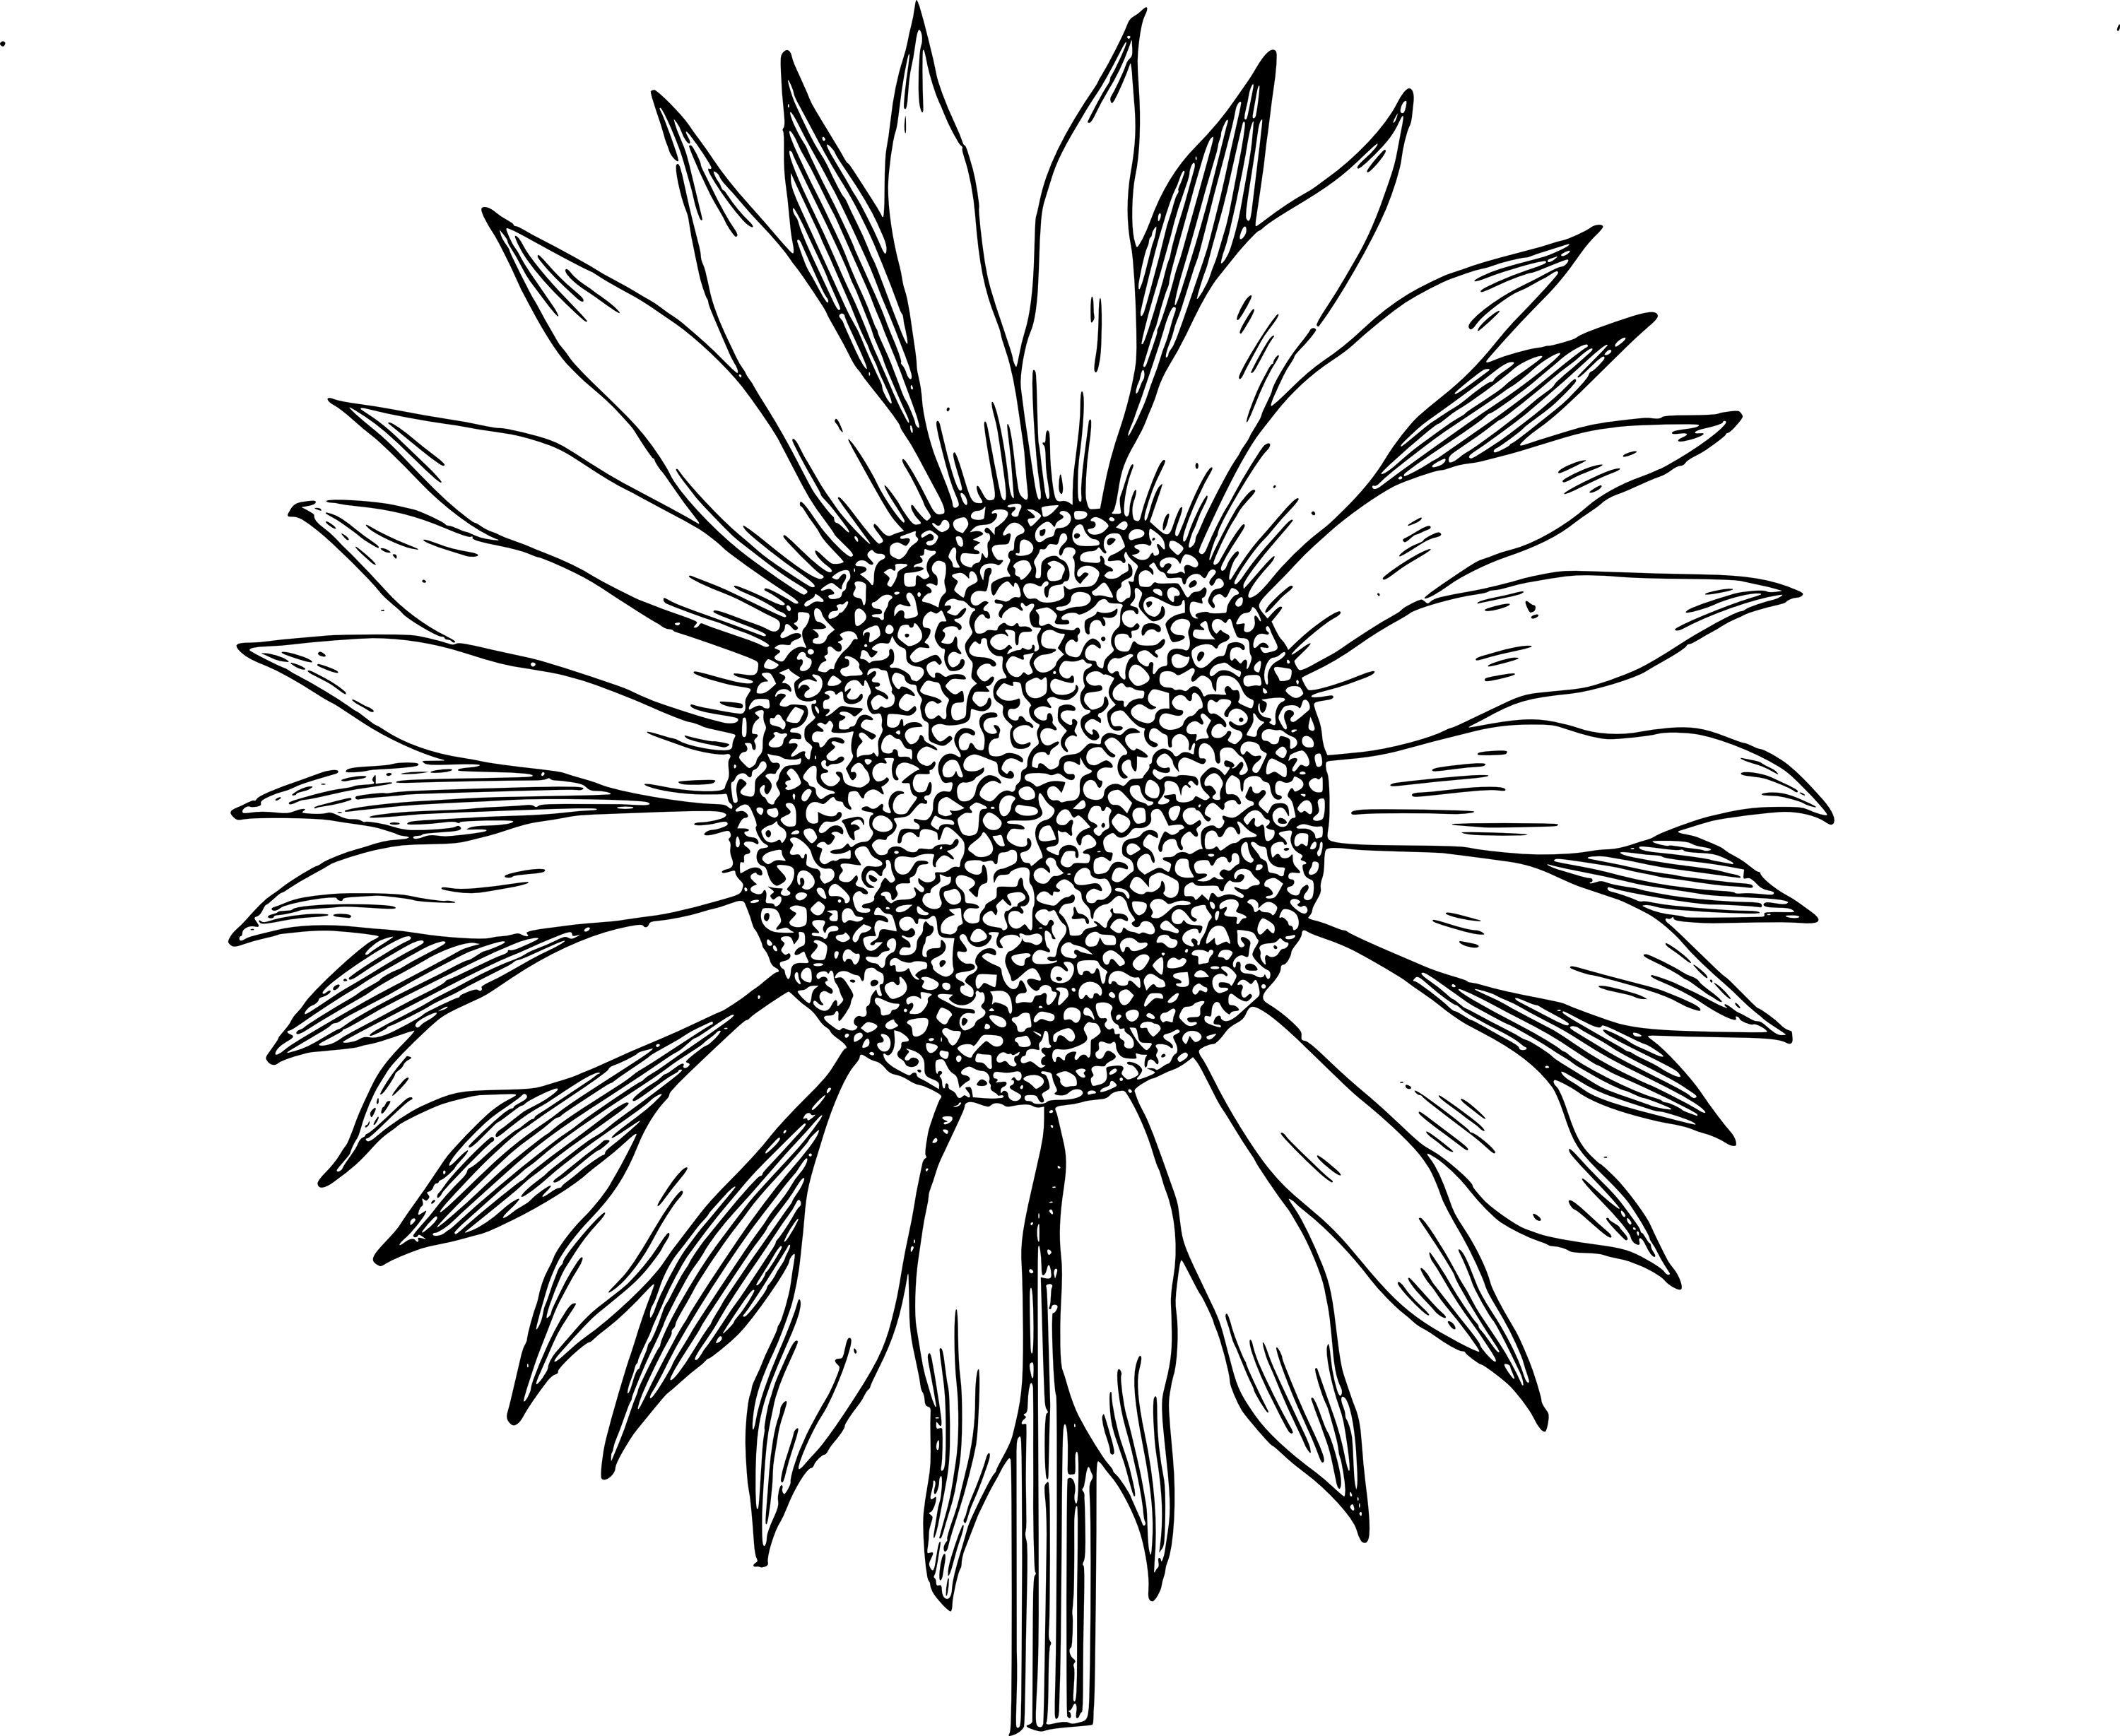 3000x2457 Free Clip Art Sunflower Vector Image Clip Art Department S And S